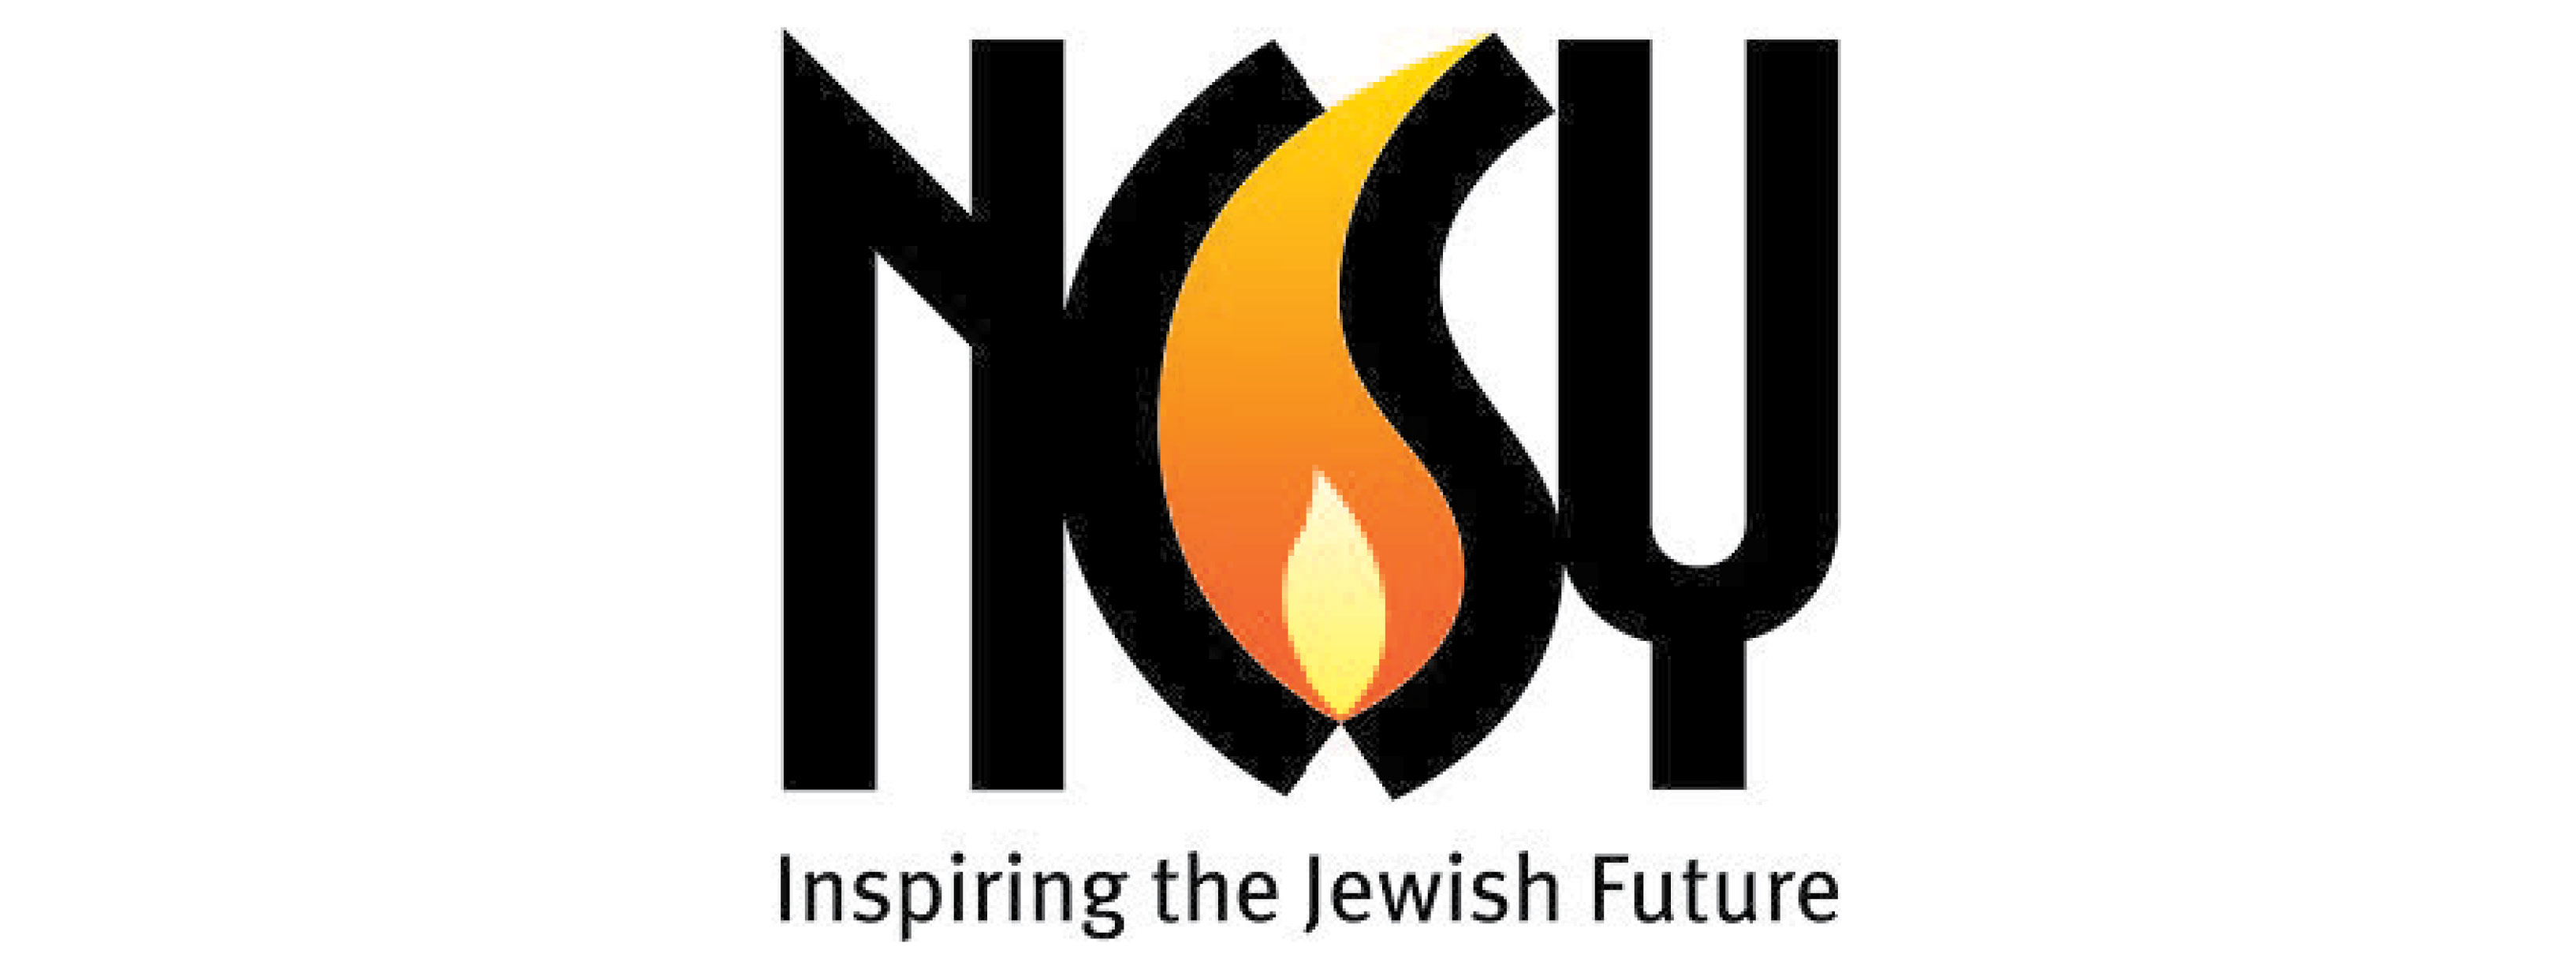 Travelscholarships minneapolis jewish federation offering biocorpaavc Image collections